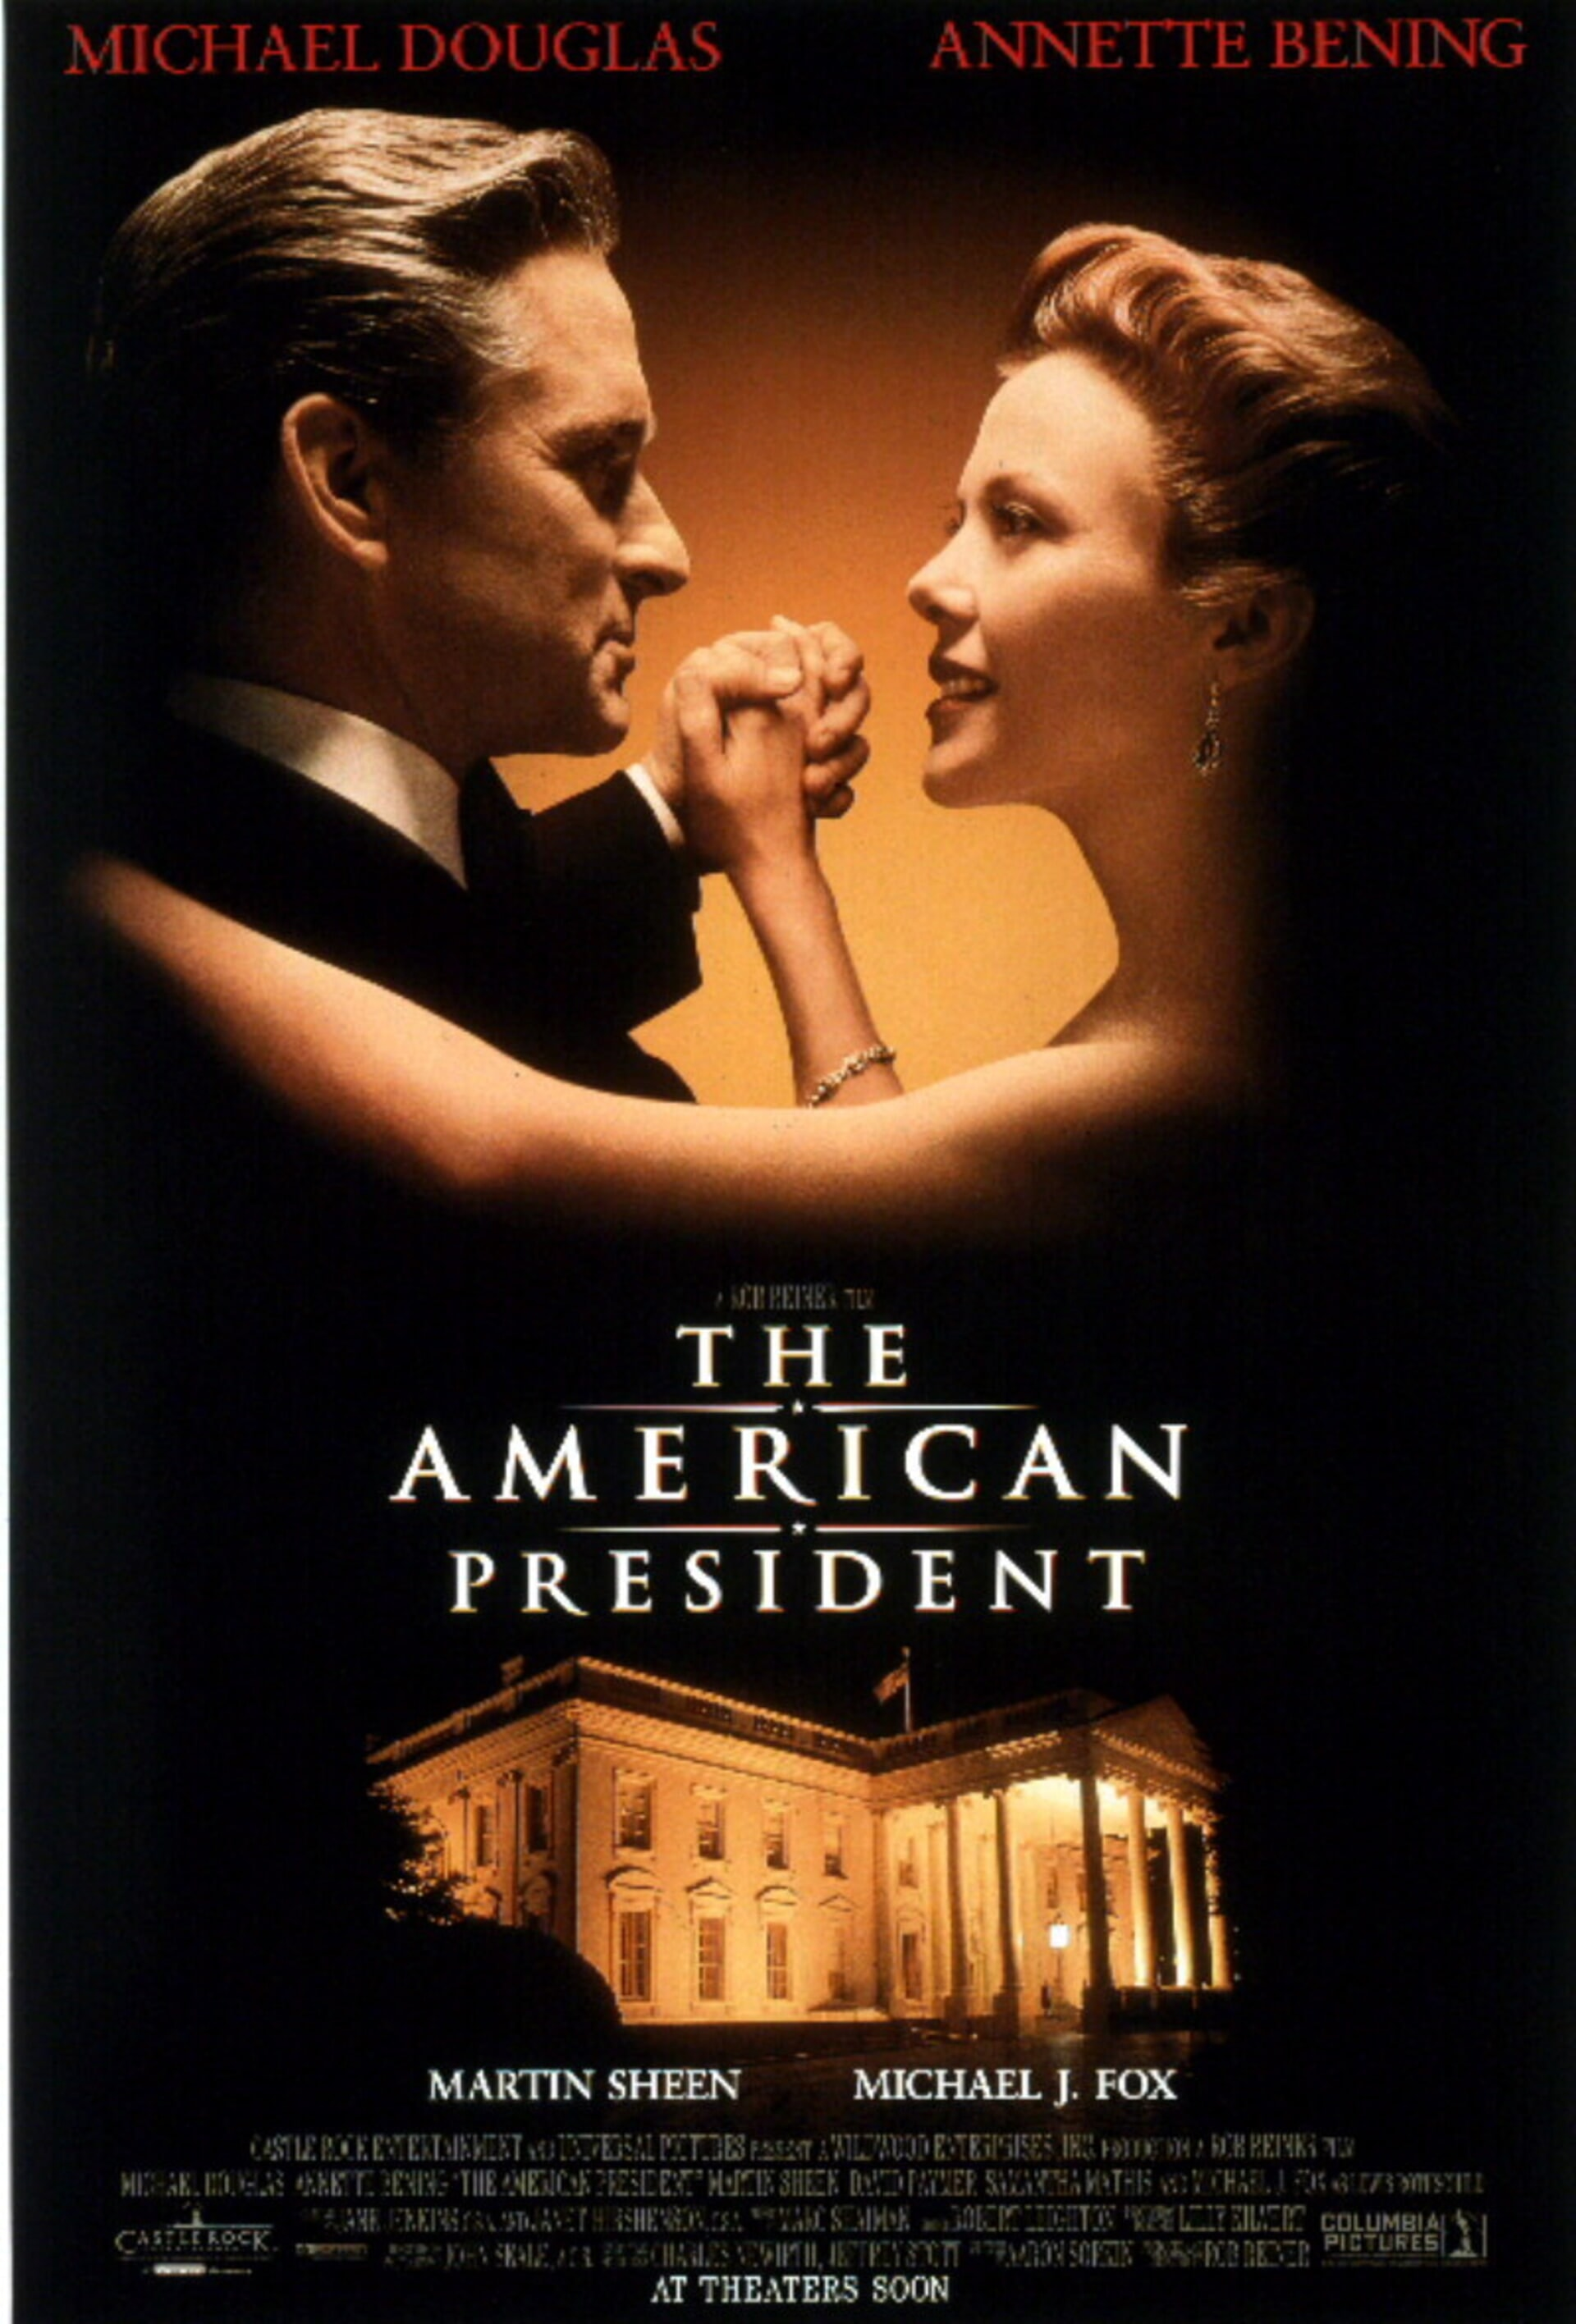 The American President - Poster 2